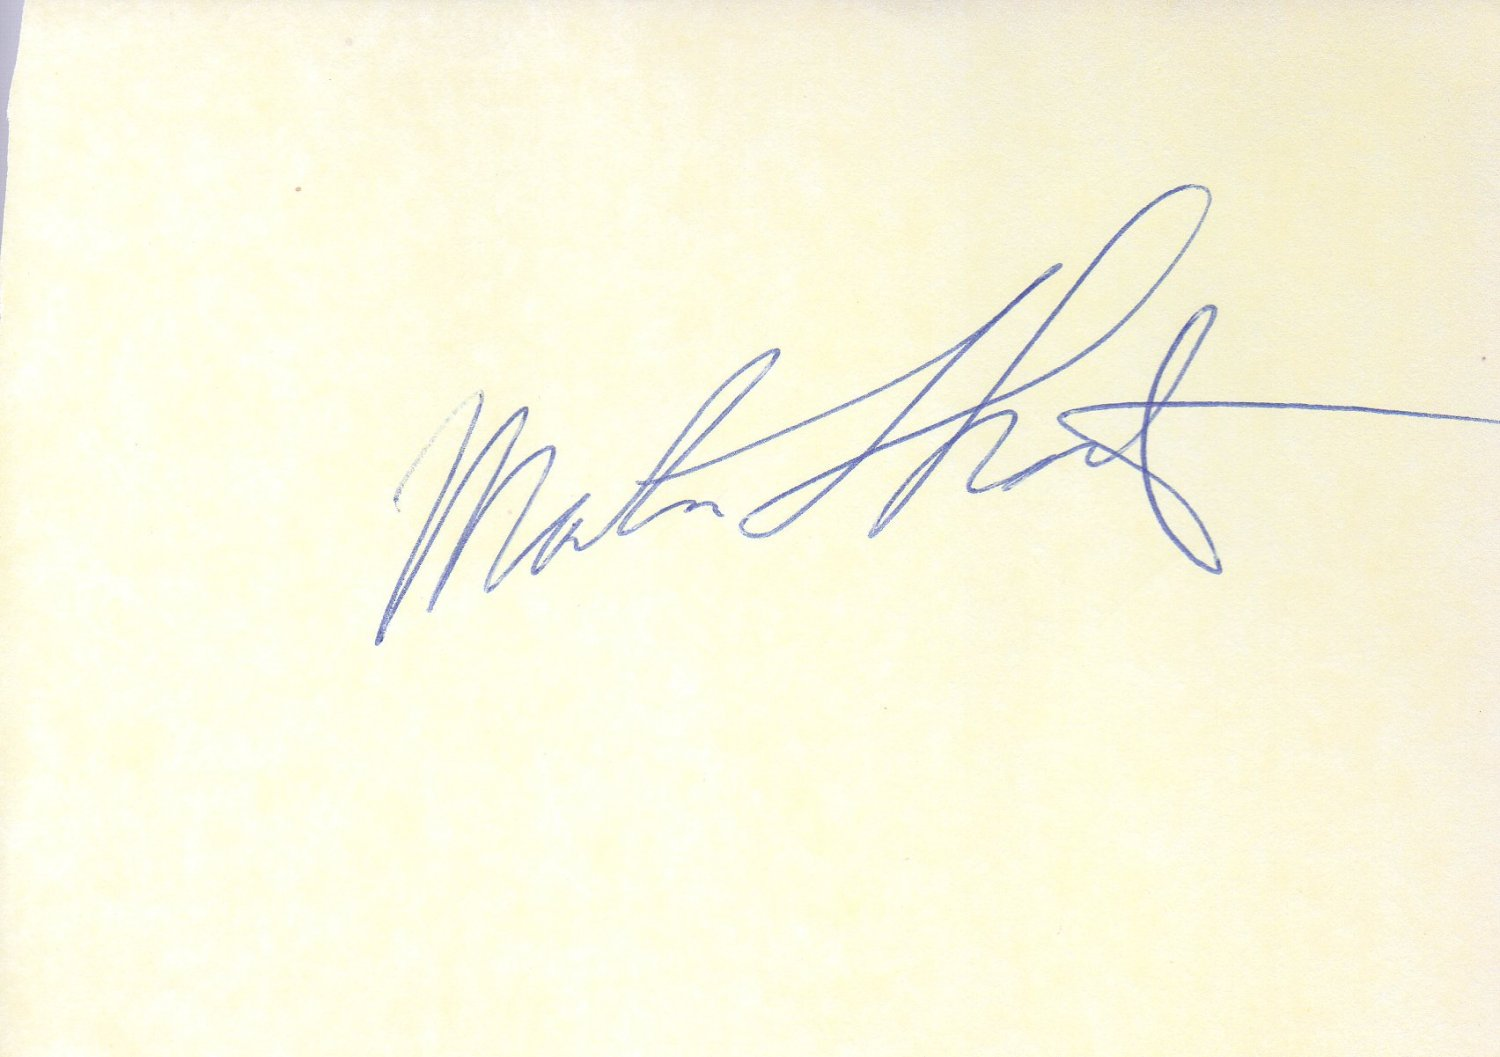 Martin Short hand signed 4x6 album page